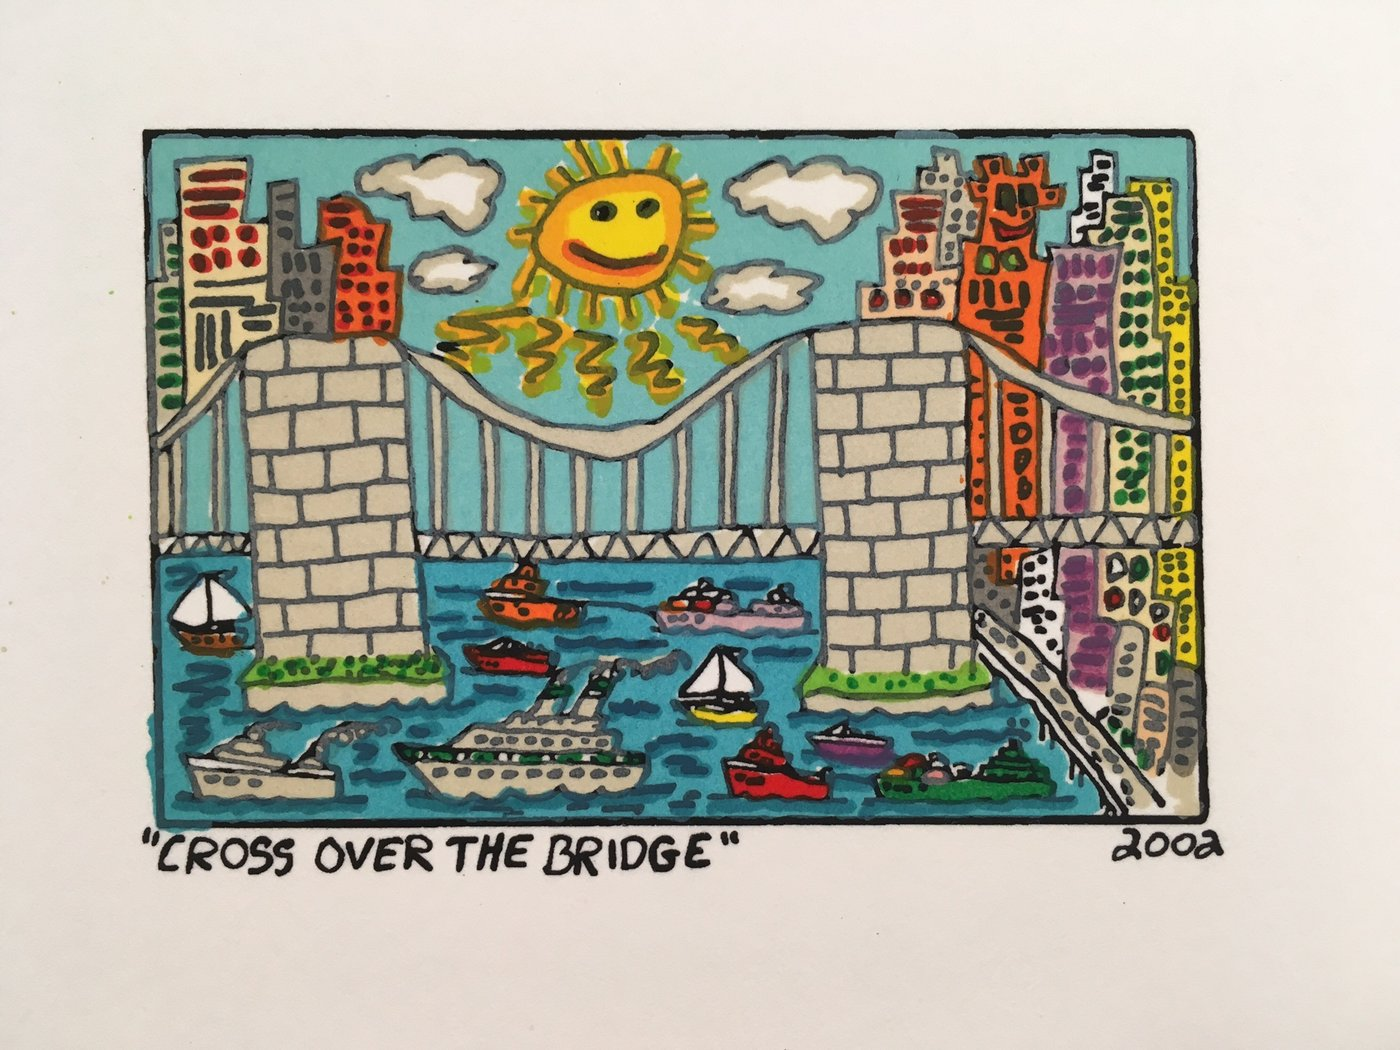 James Rizzi - CROSS OVER THE BRIDGE